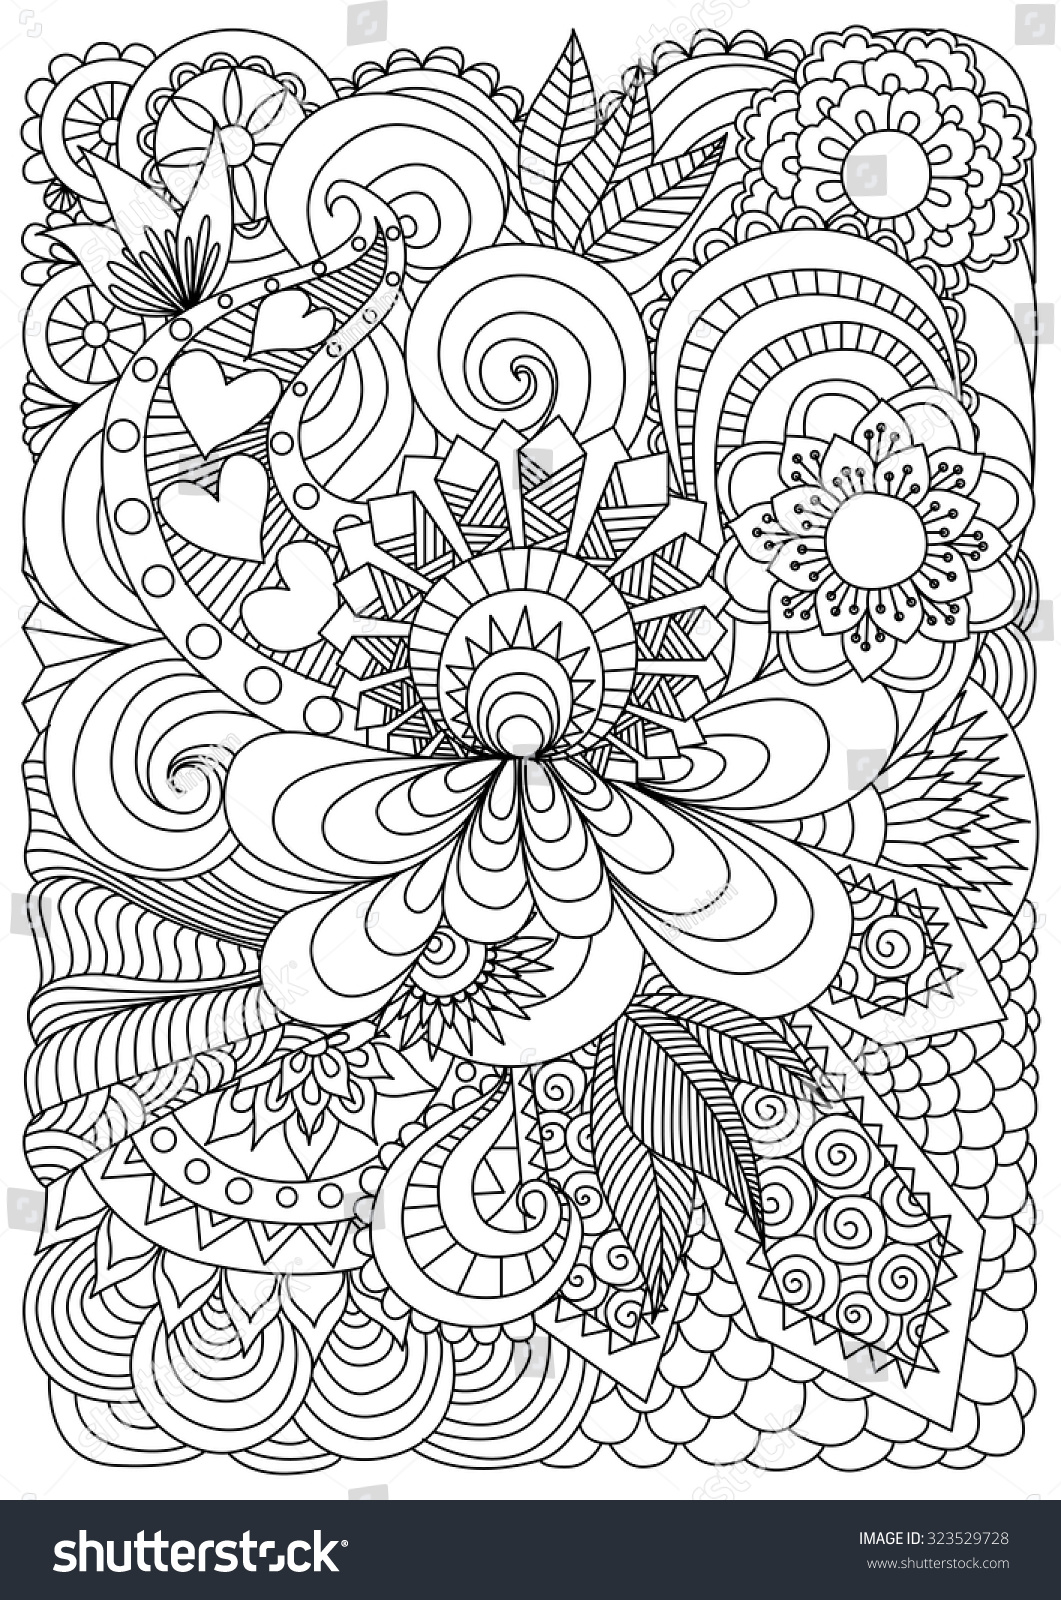 Hand drawn zentangle floral background coloring stock for Background coloring pages